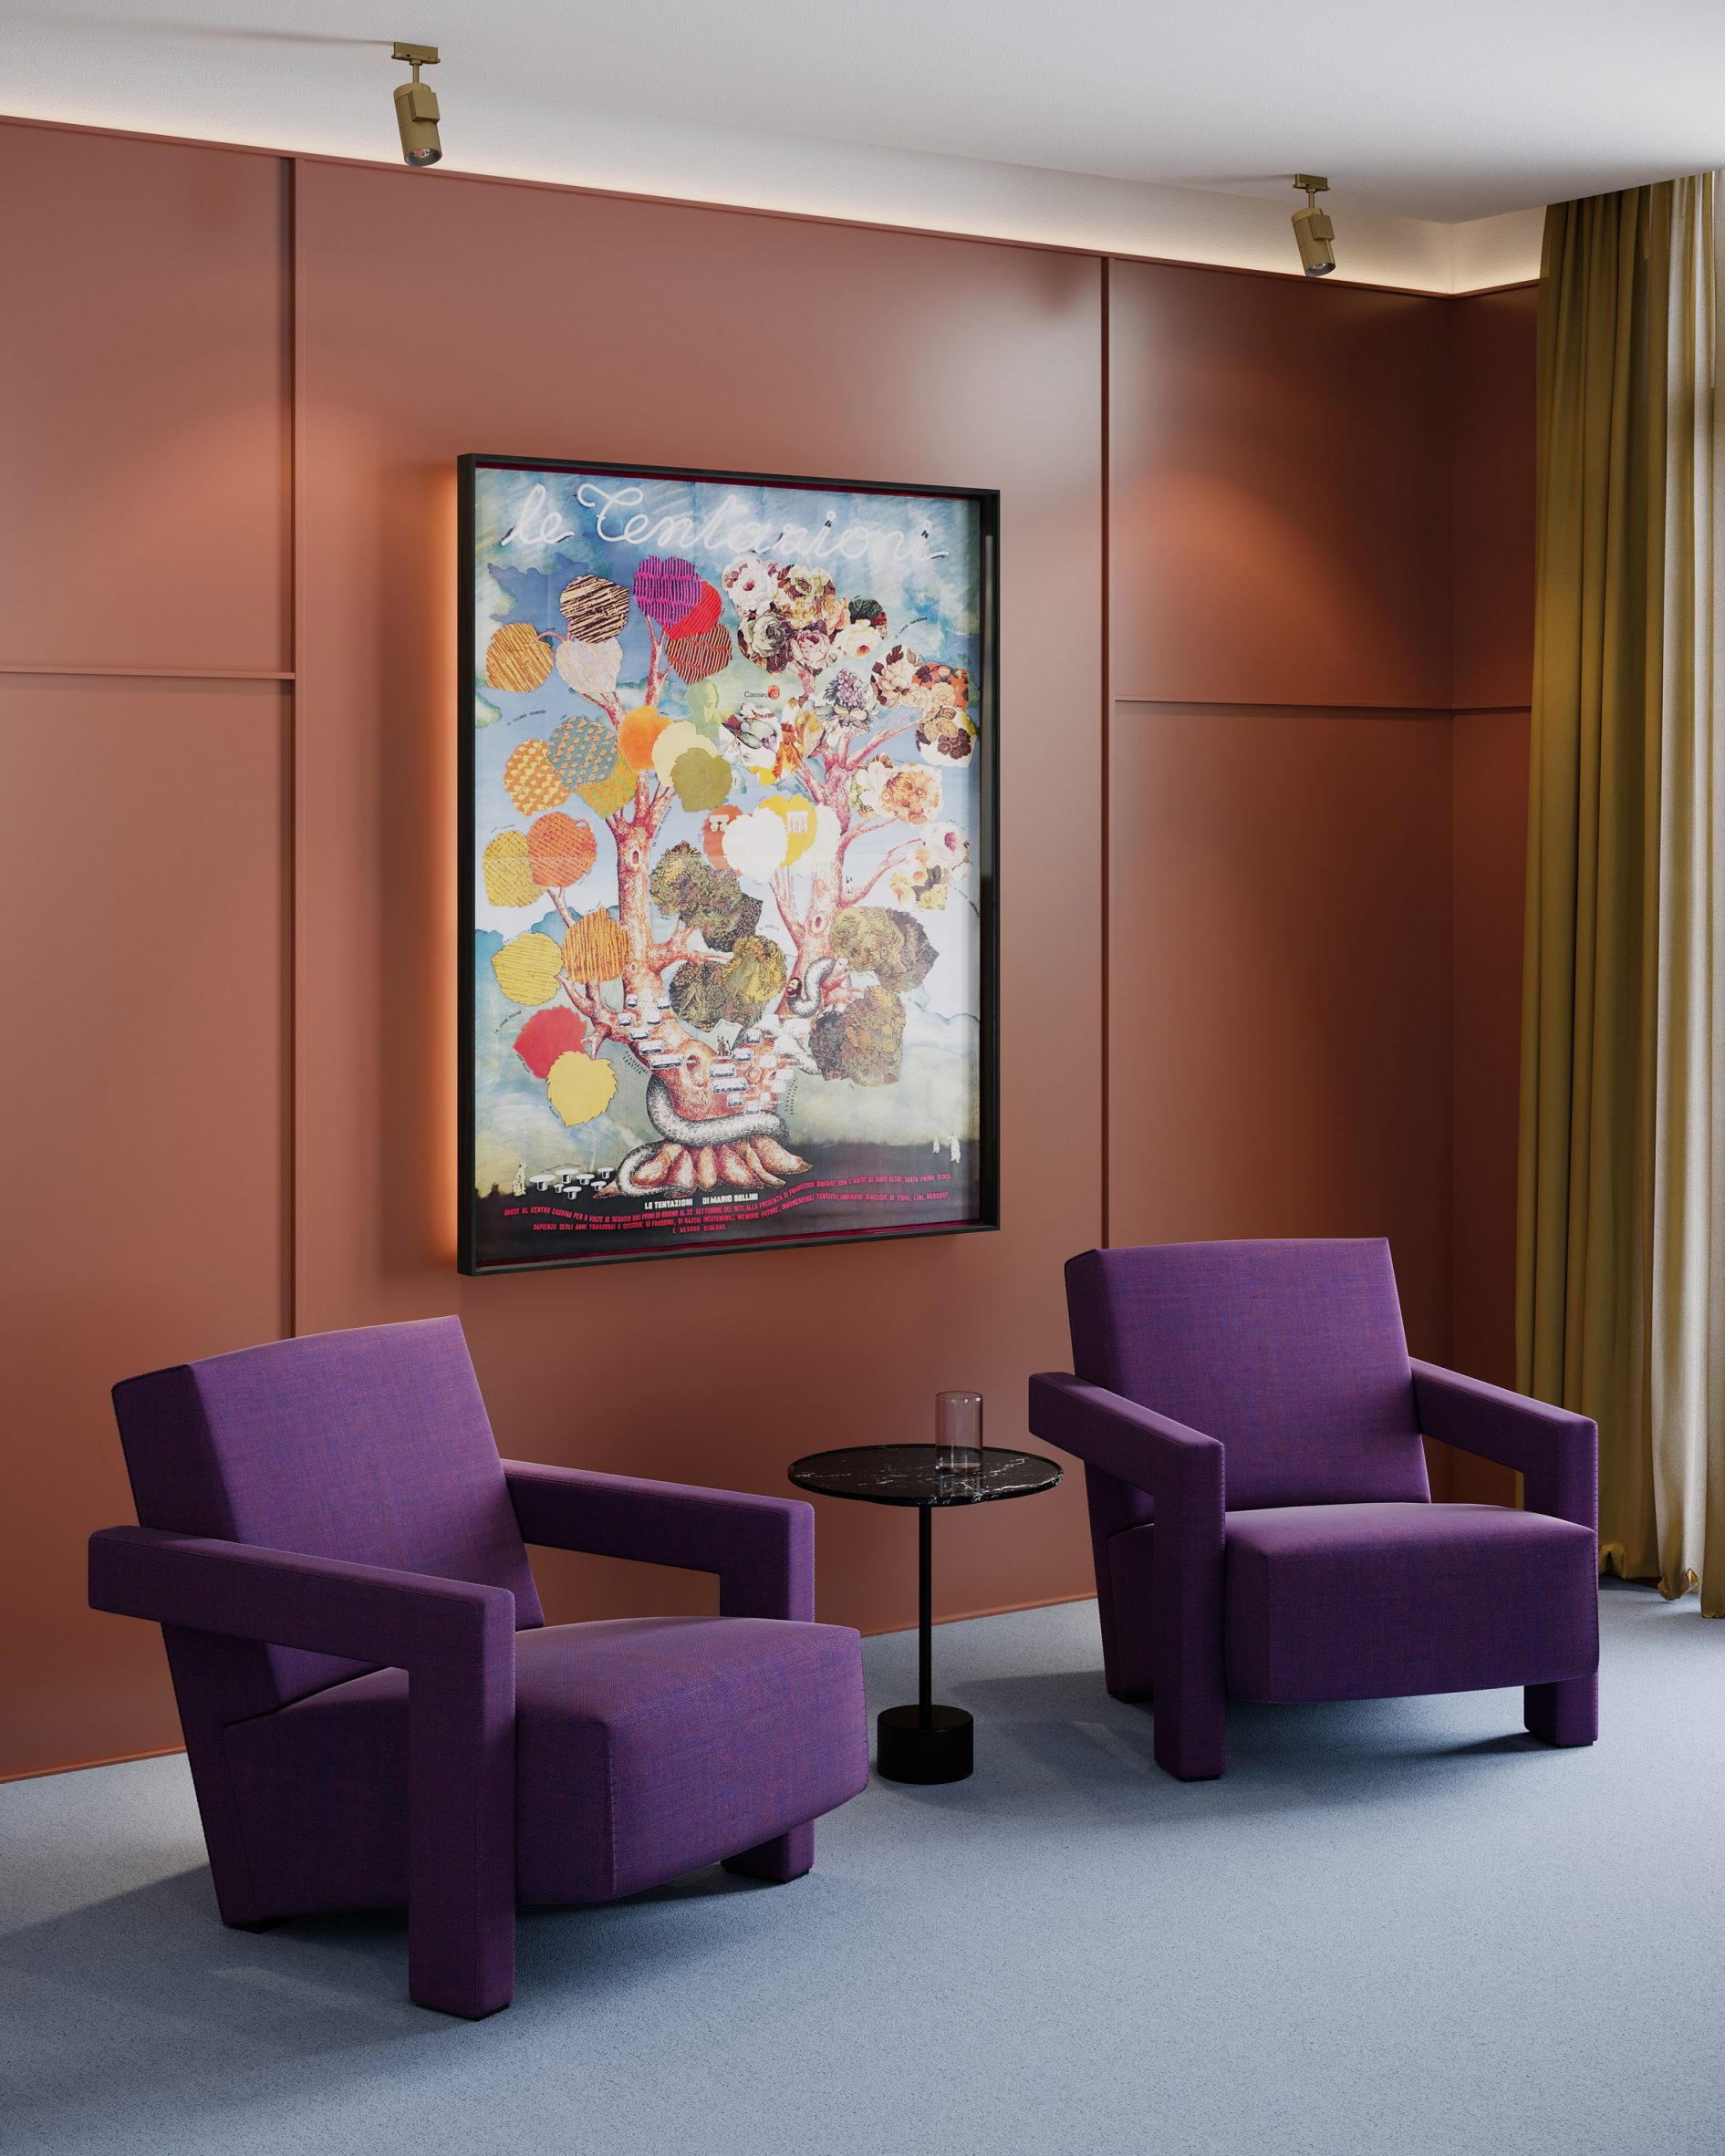 Purple Utrecht armchairs in a wood-panelled office with a floral artwork